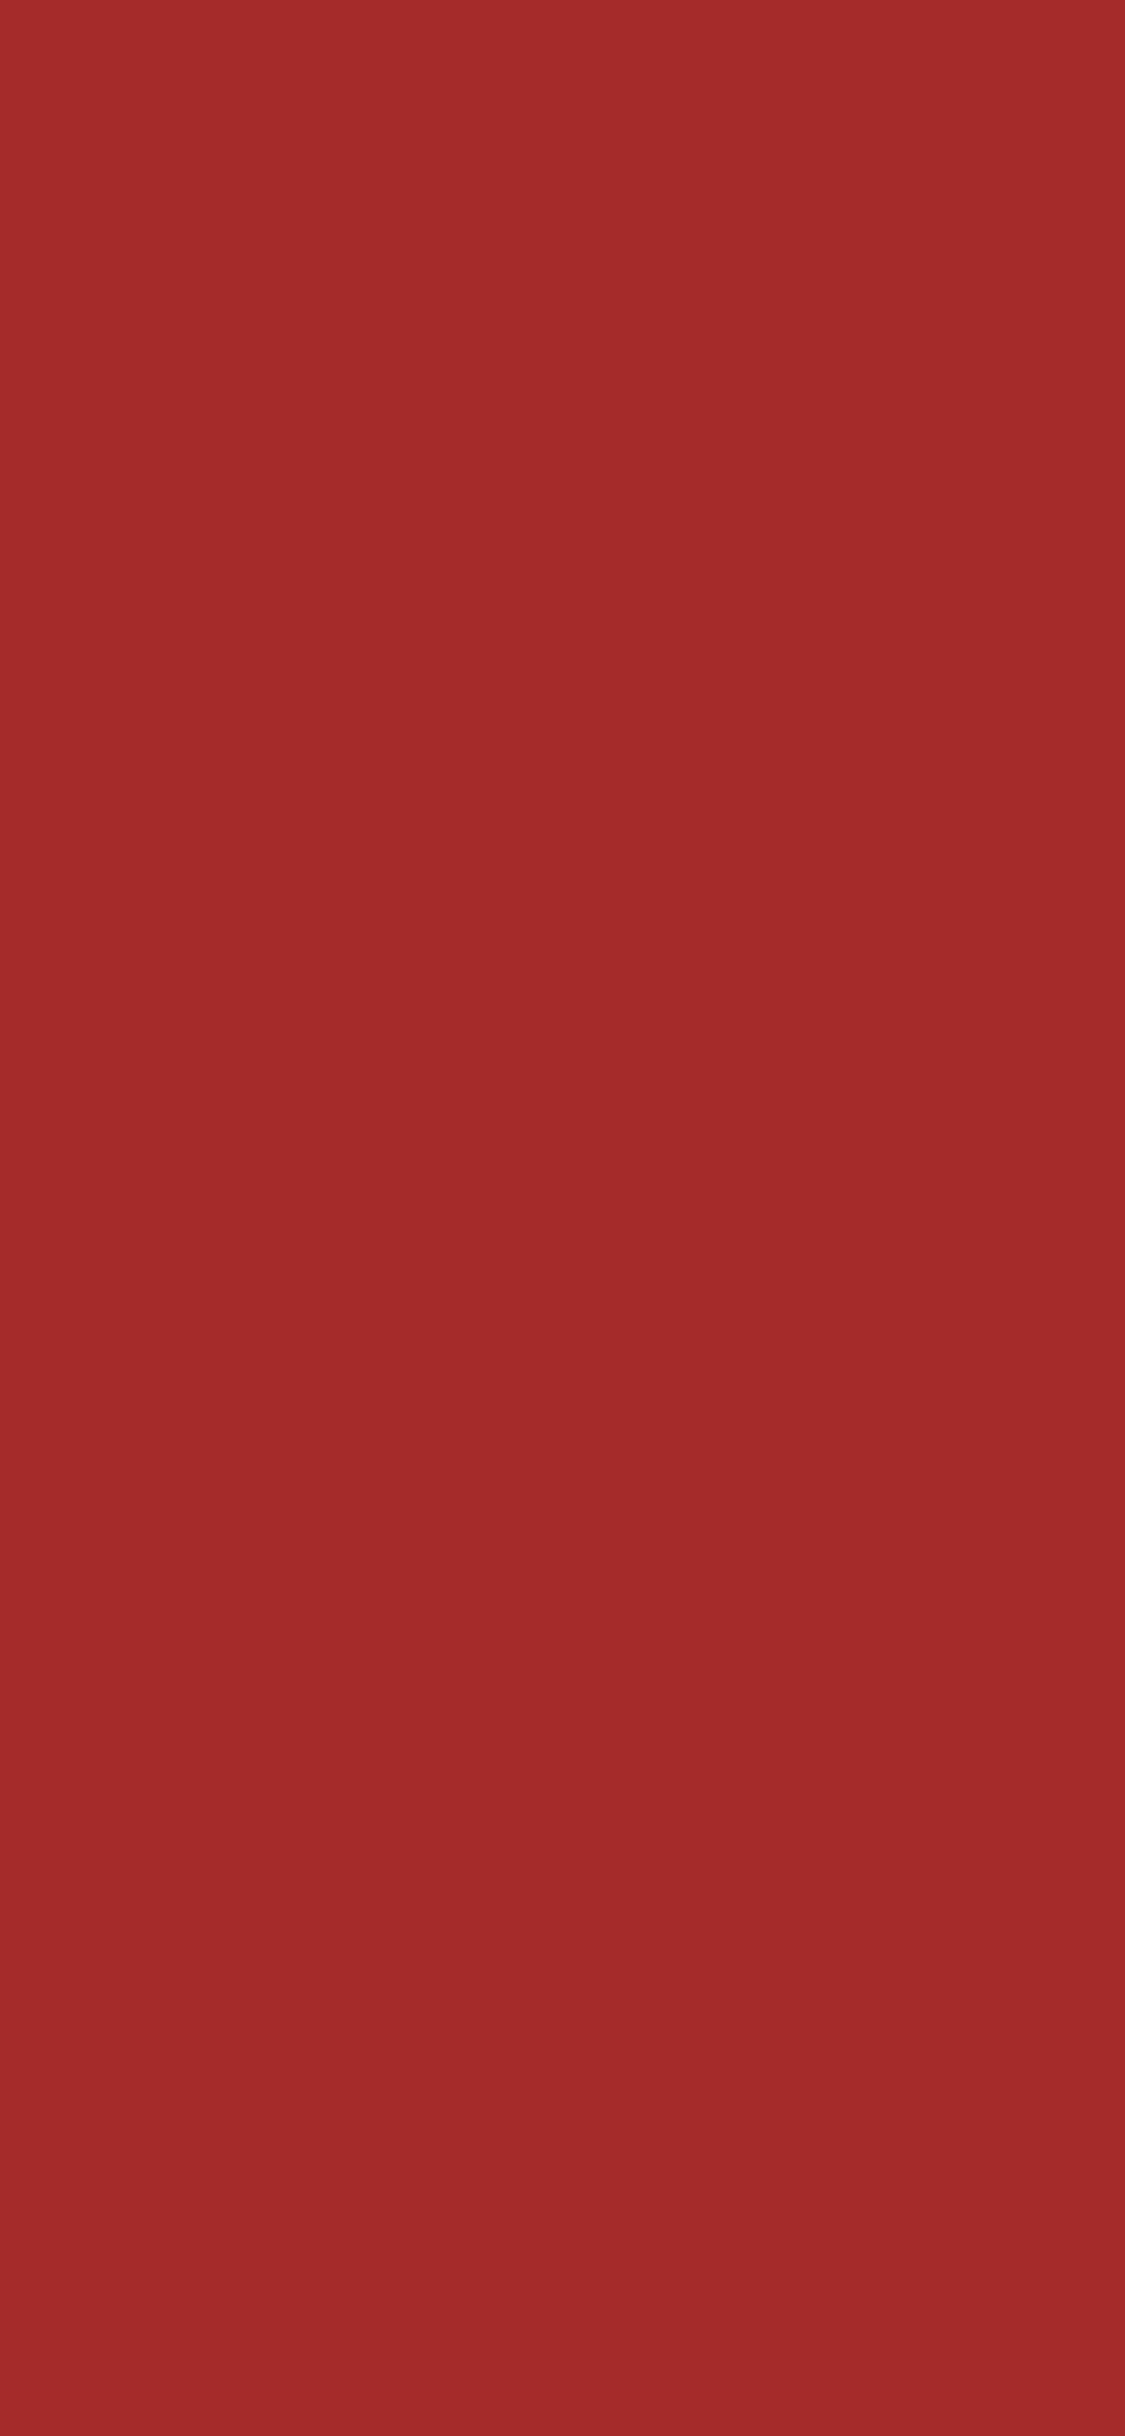 1125x2436 Red-brown Solid Color Background